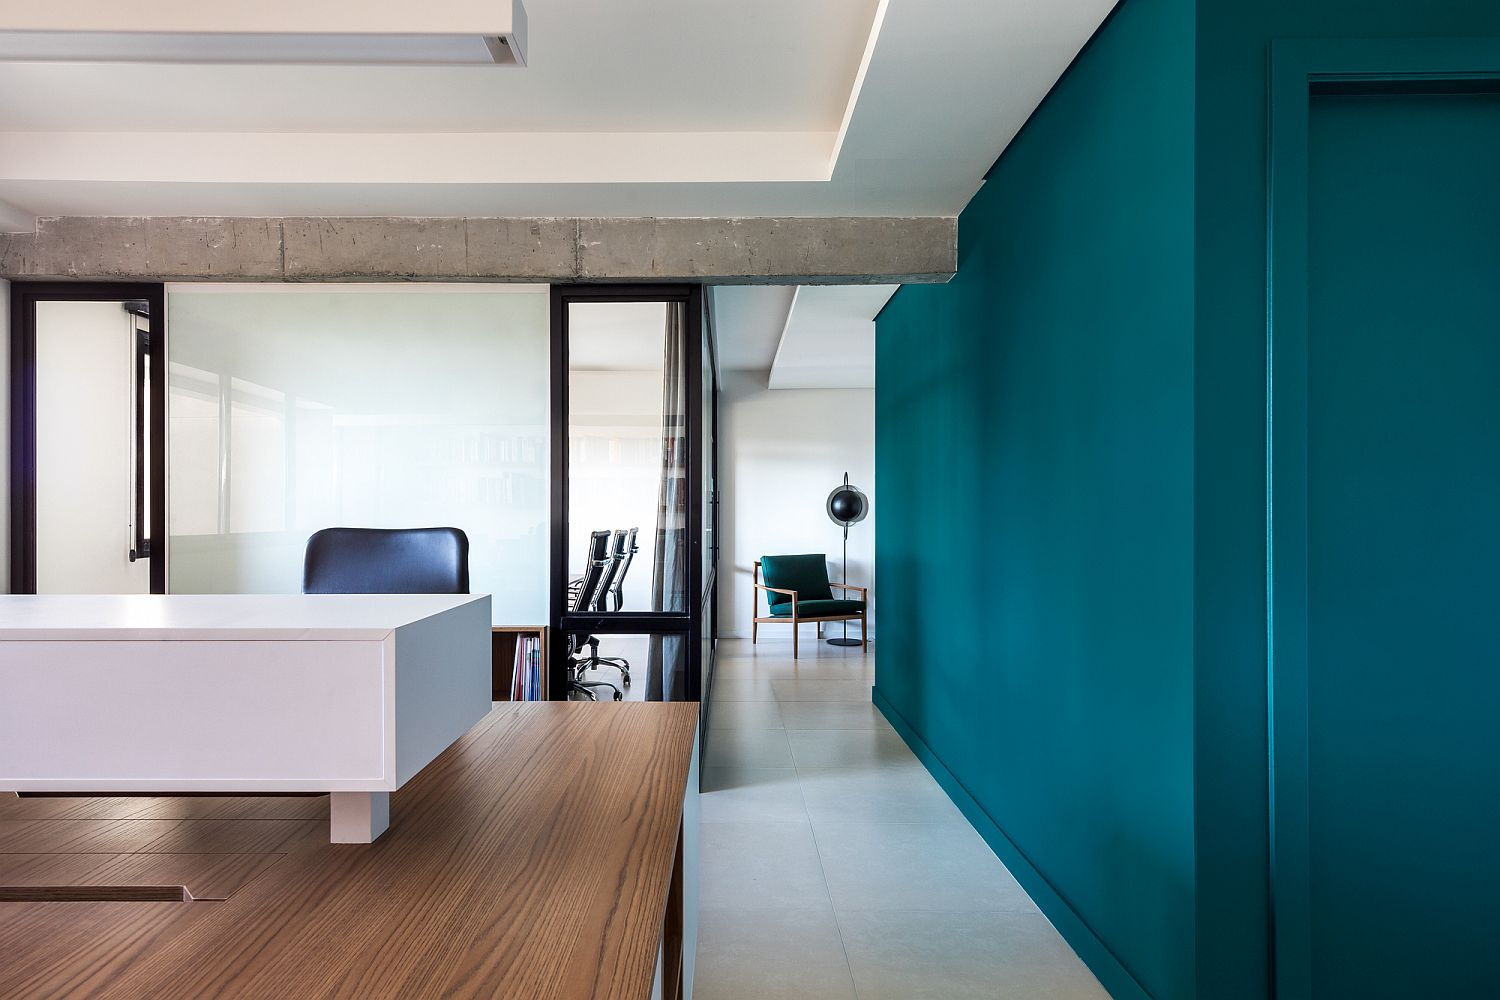 Porcelain flooring, wood and white walls and engaging green accents inside the office